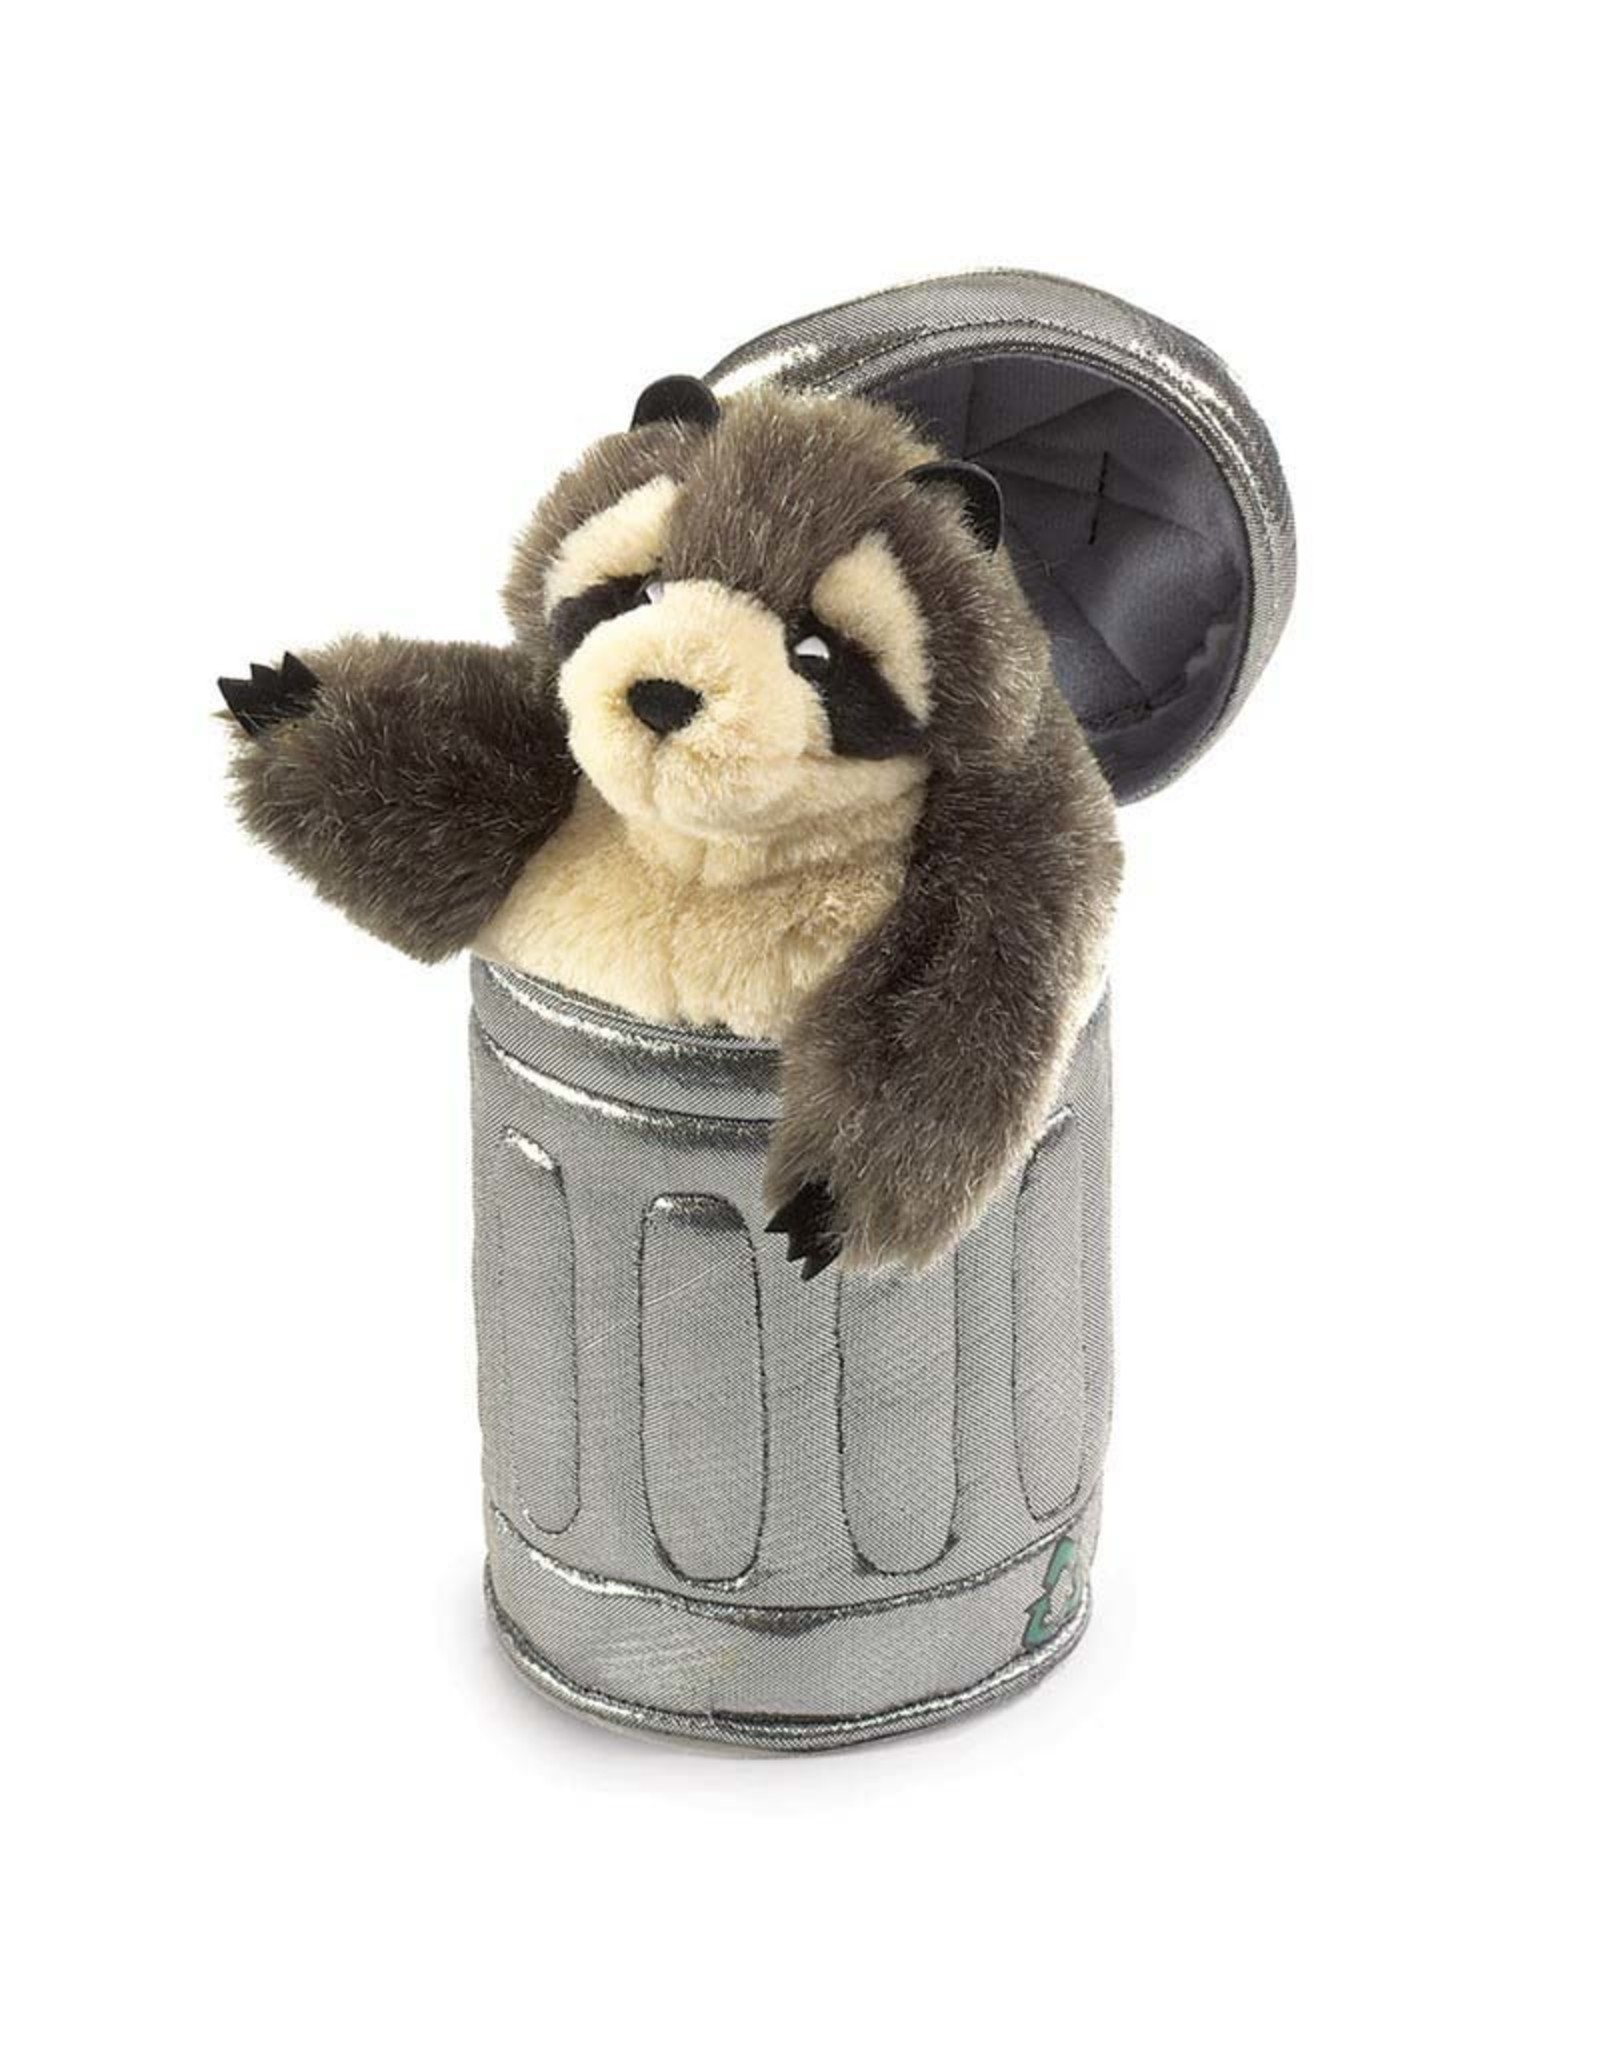 Folkmanis Folkmanis RACCOON IN GARBAGE CAN Puppet